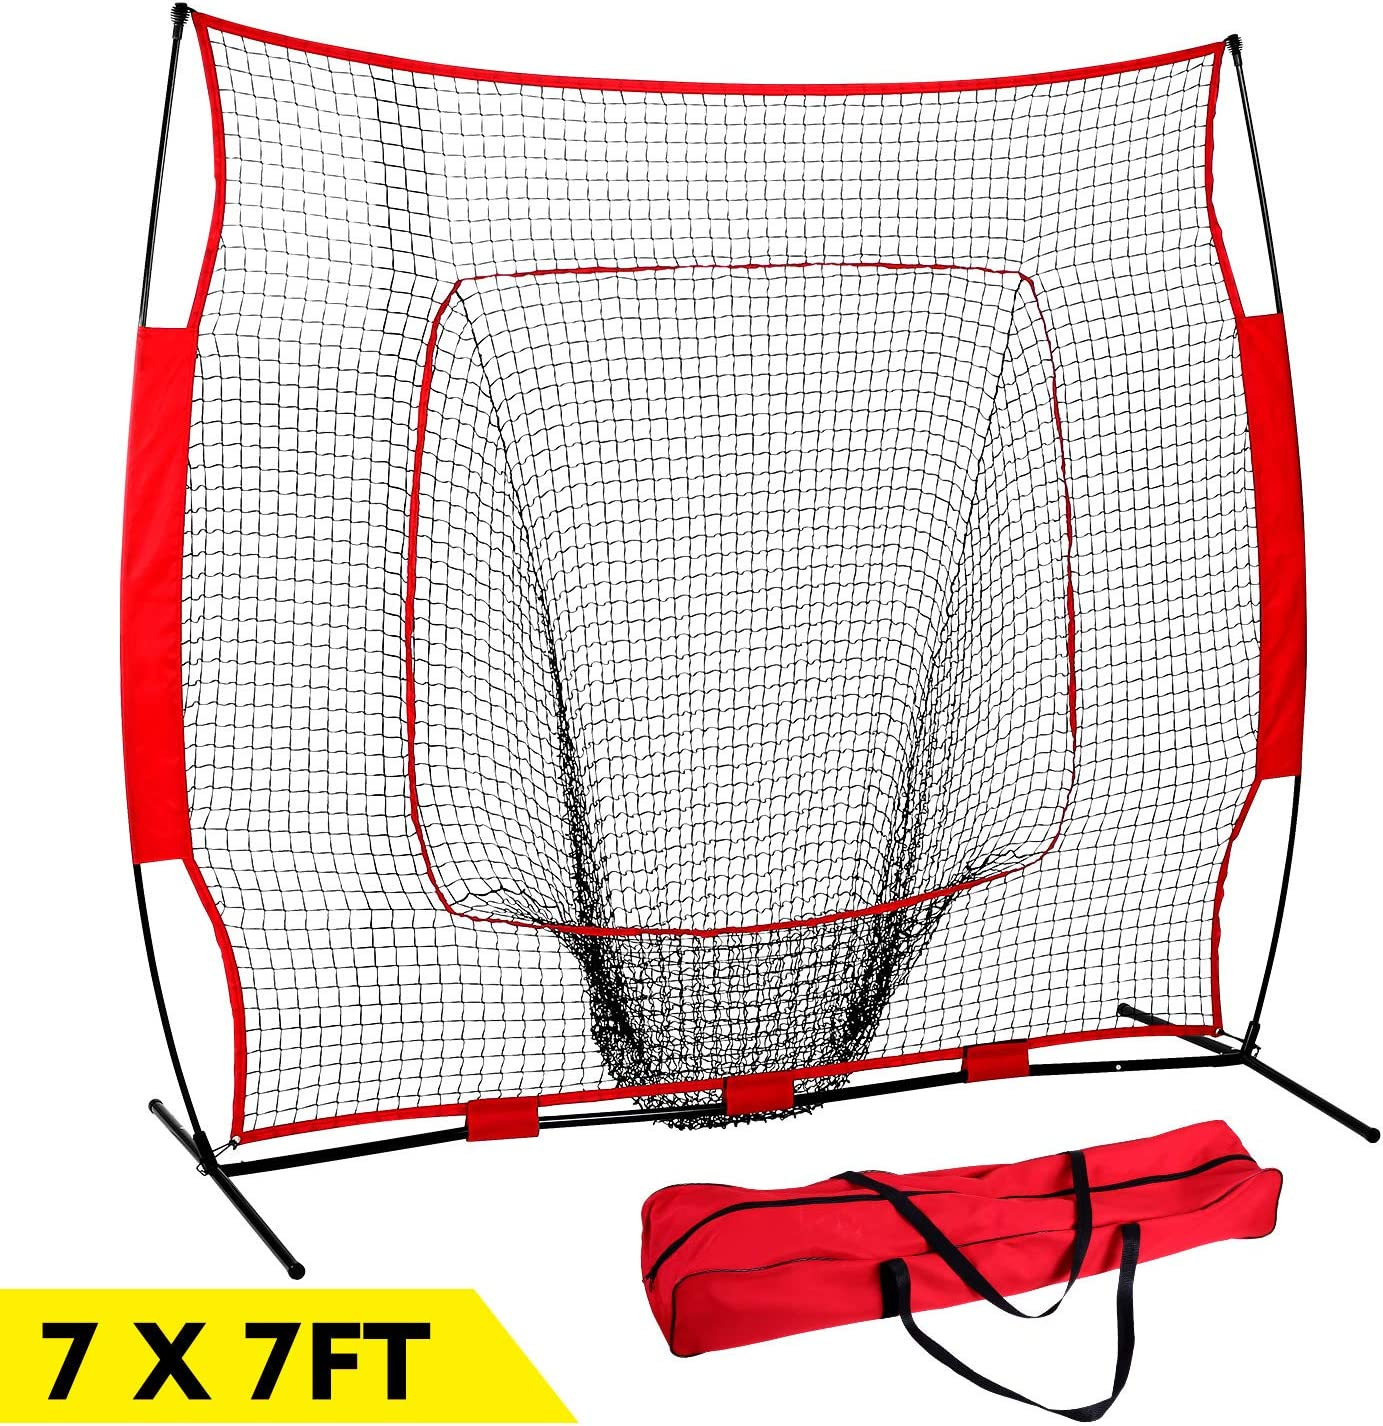 GARTIO 7 7 Baseball Softball Practice Net, Hitting Pitching Batting Fielding Training Equipment with Carry Bag, Portable Easy Setup, Suit for Team or Solo All Skill Levels Training Indoor Outdoor